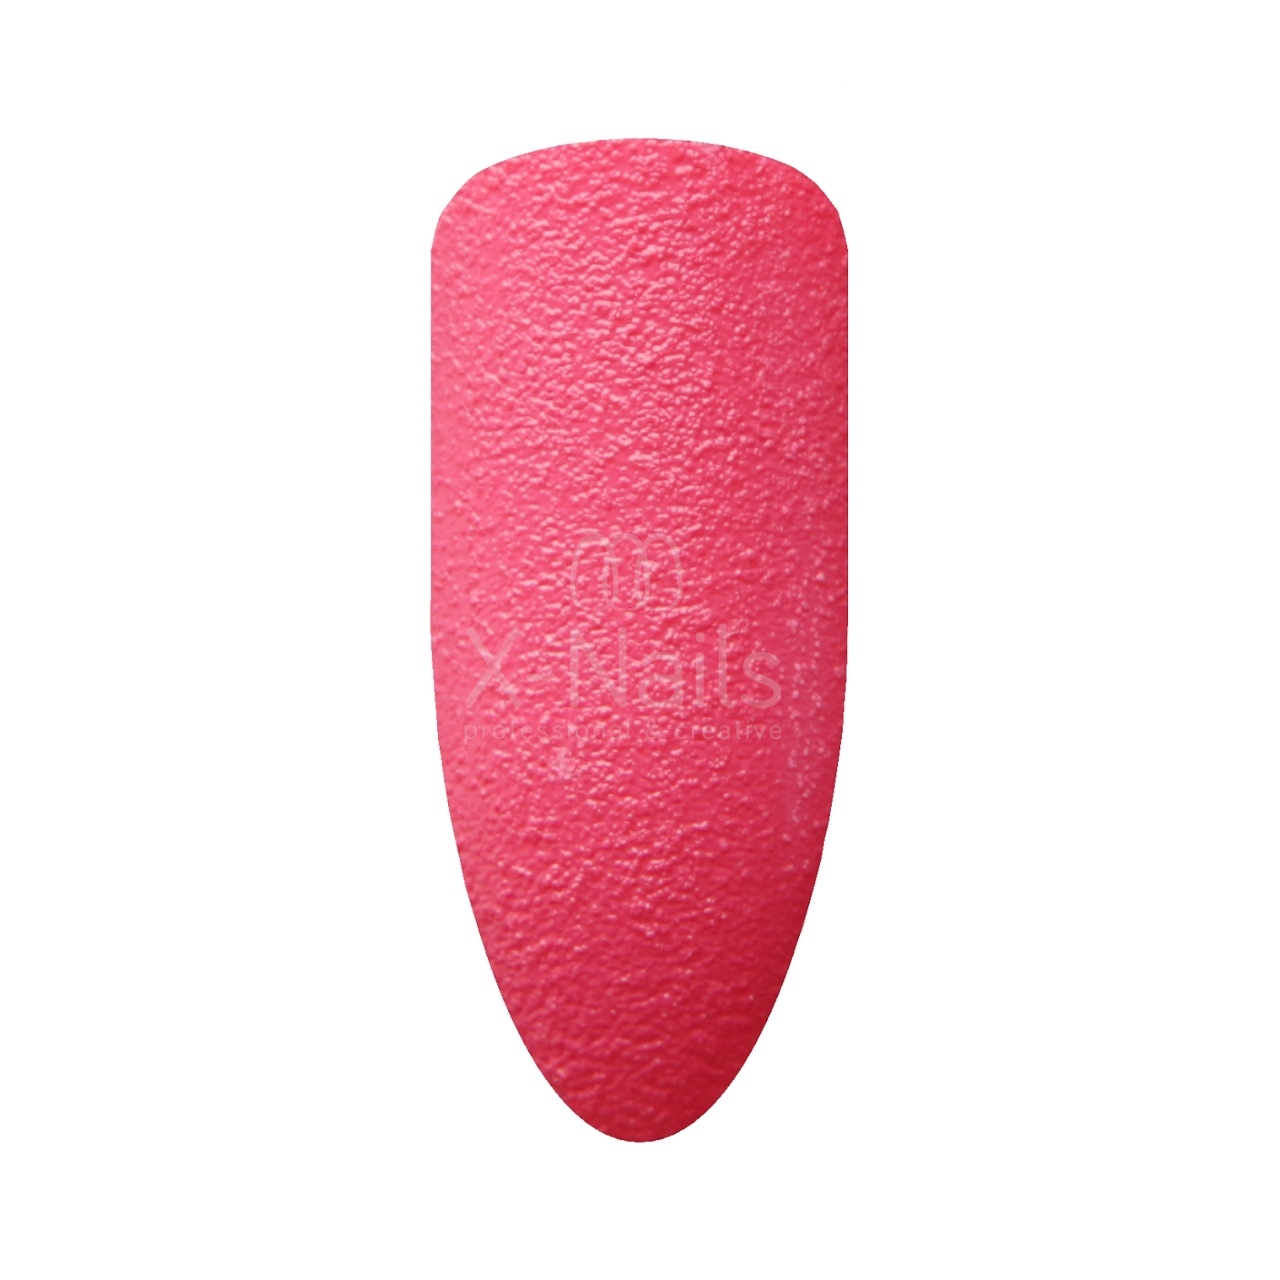 X-NAILS lak na nehty, 15 ml - 3D pískový efekt 115 - Sandy in Hot Pink